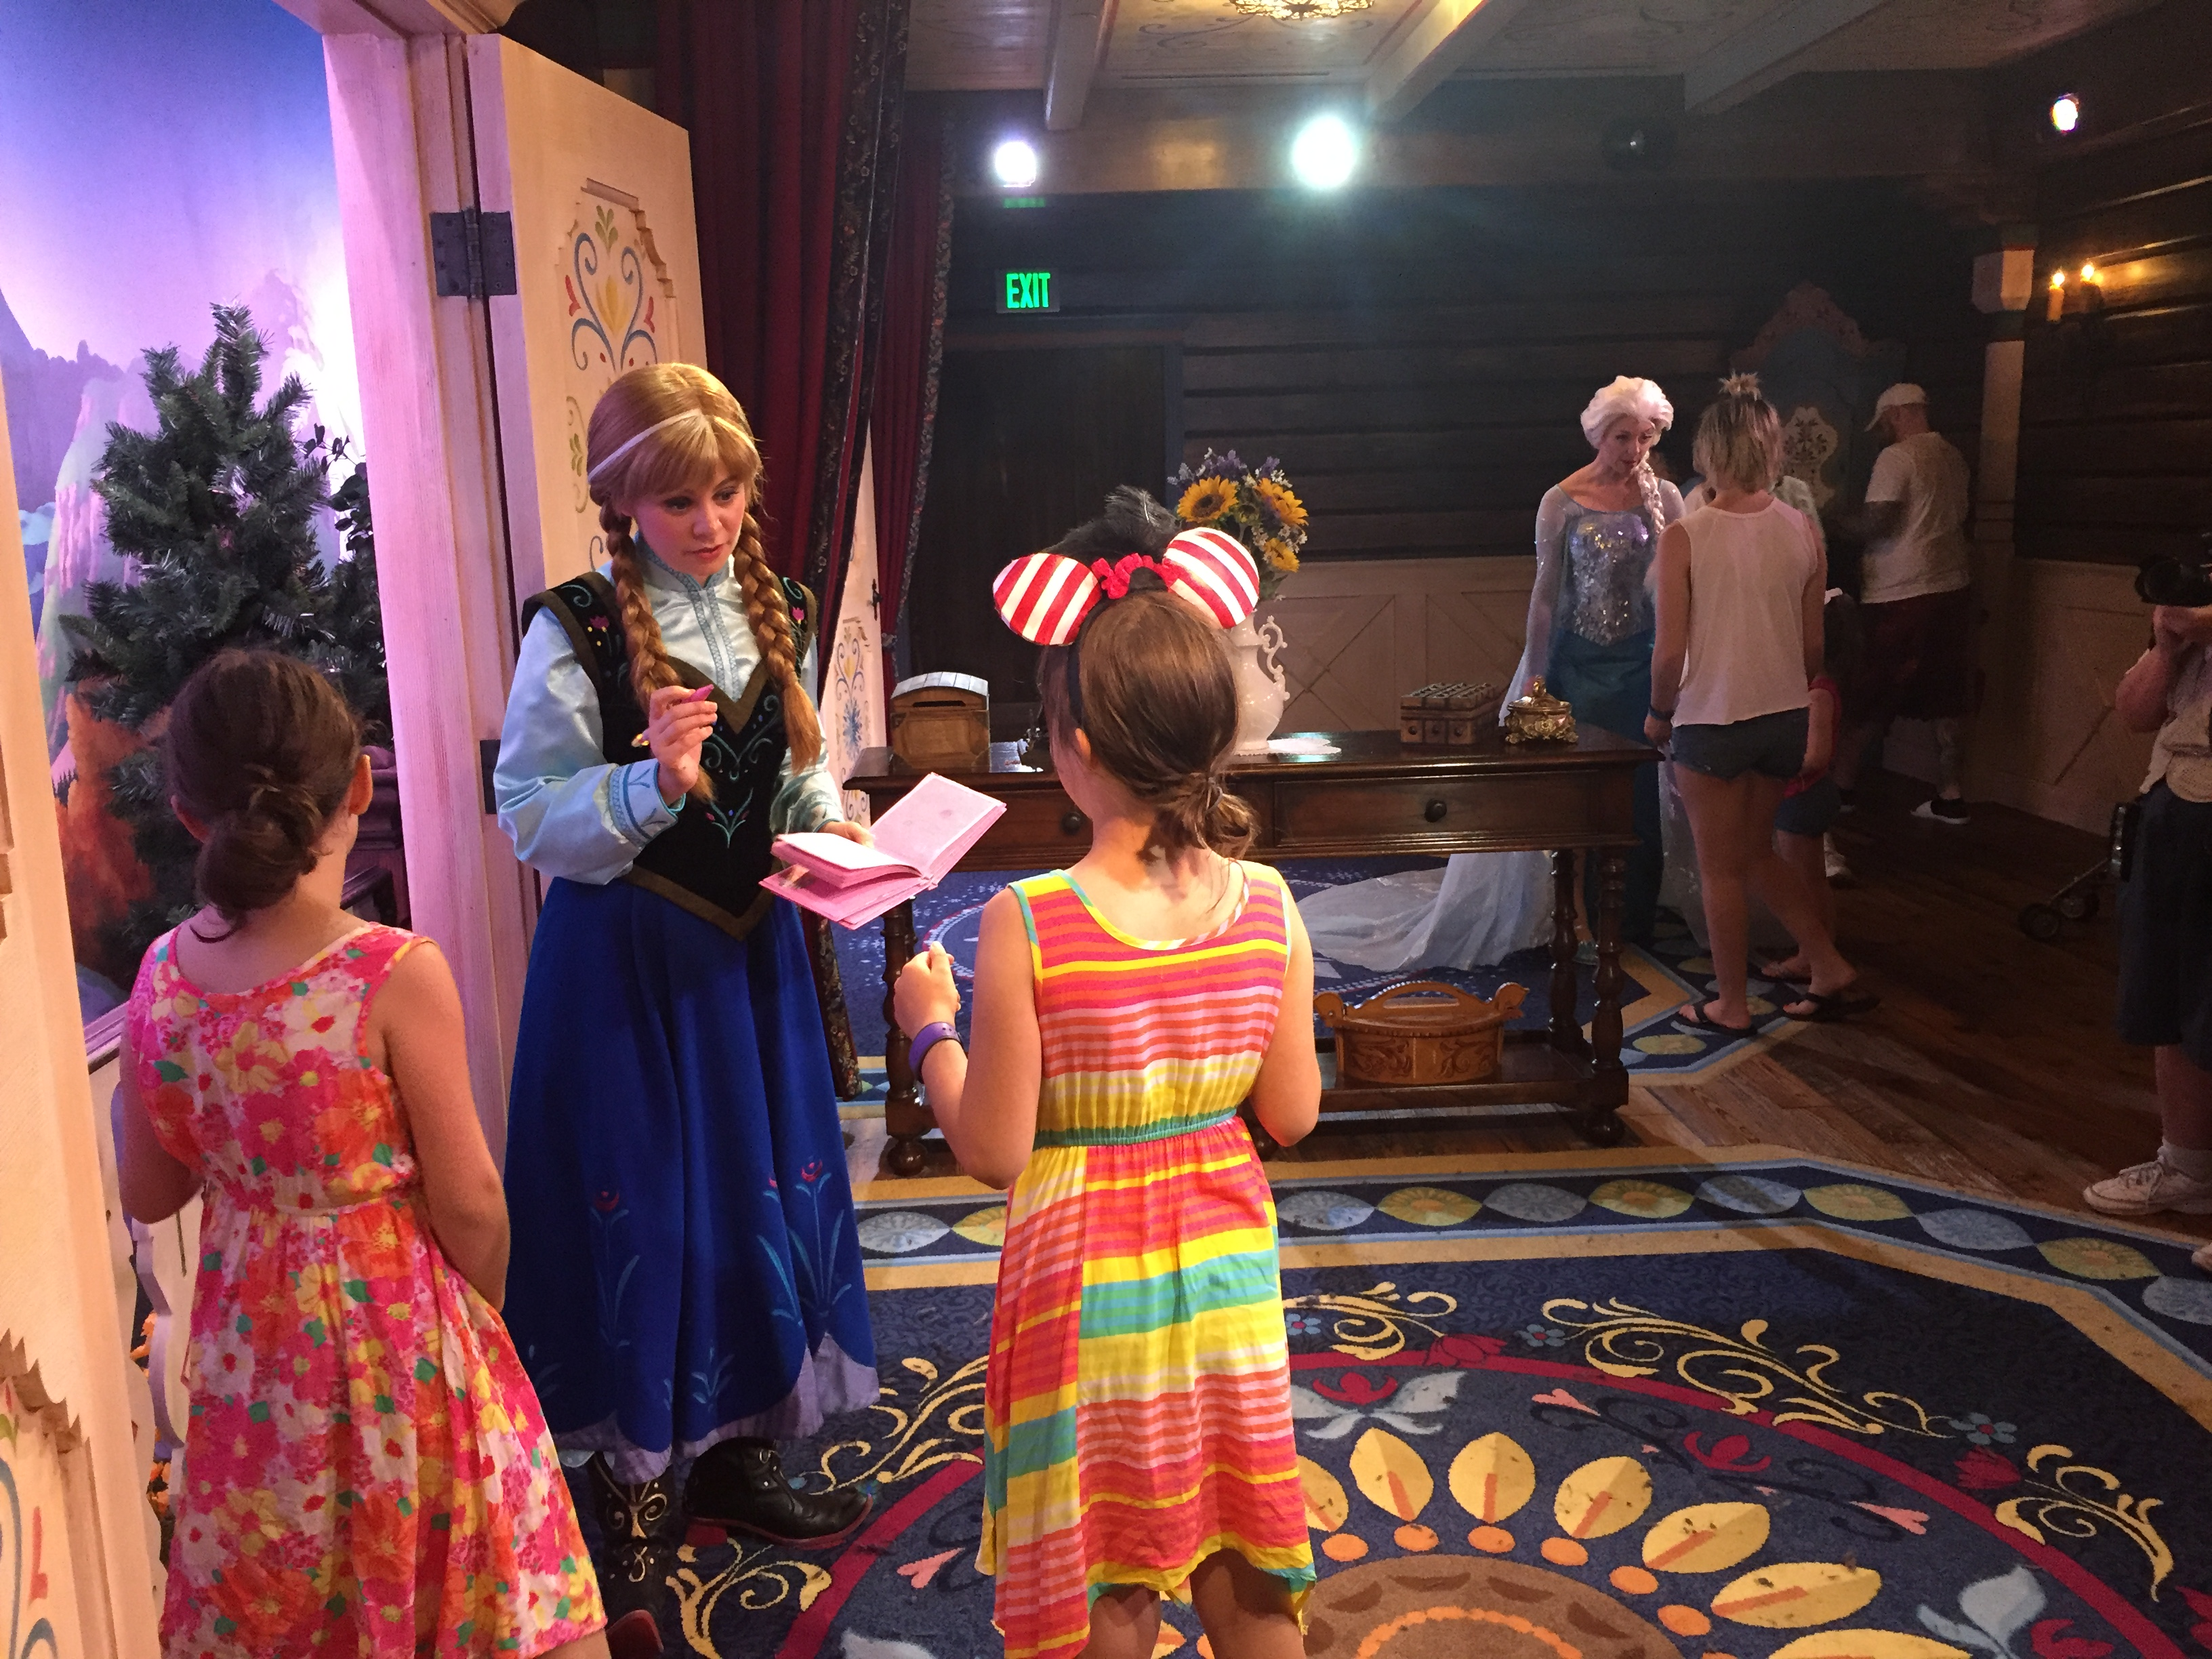 A closer look at disney worlds new anna and elsa meet and greet if youre a fan of anna elsa rapunzel tiana cinderella or sleeping beauty youre in luck on june 17 2016 a day full of premiers at walt disney kristyandbryce Choice Image